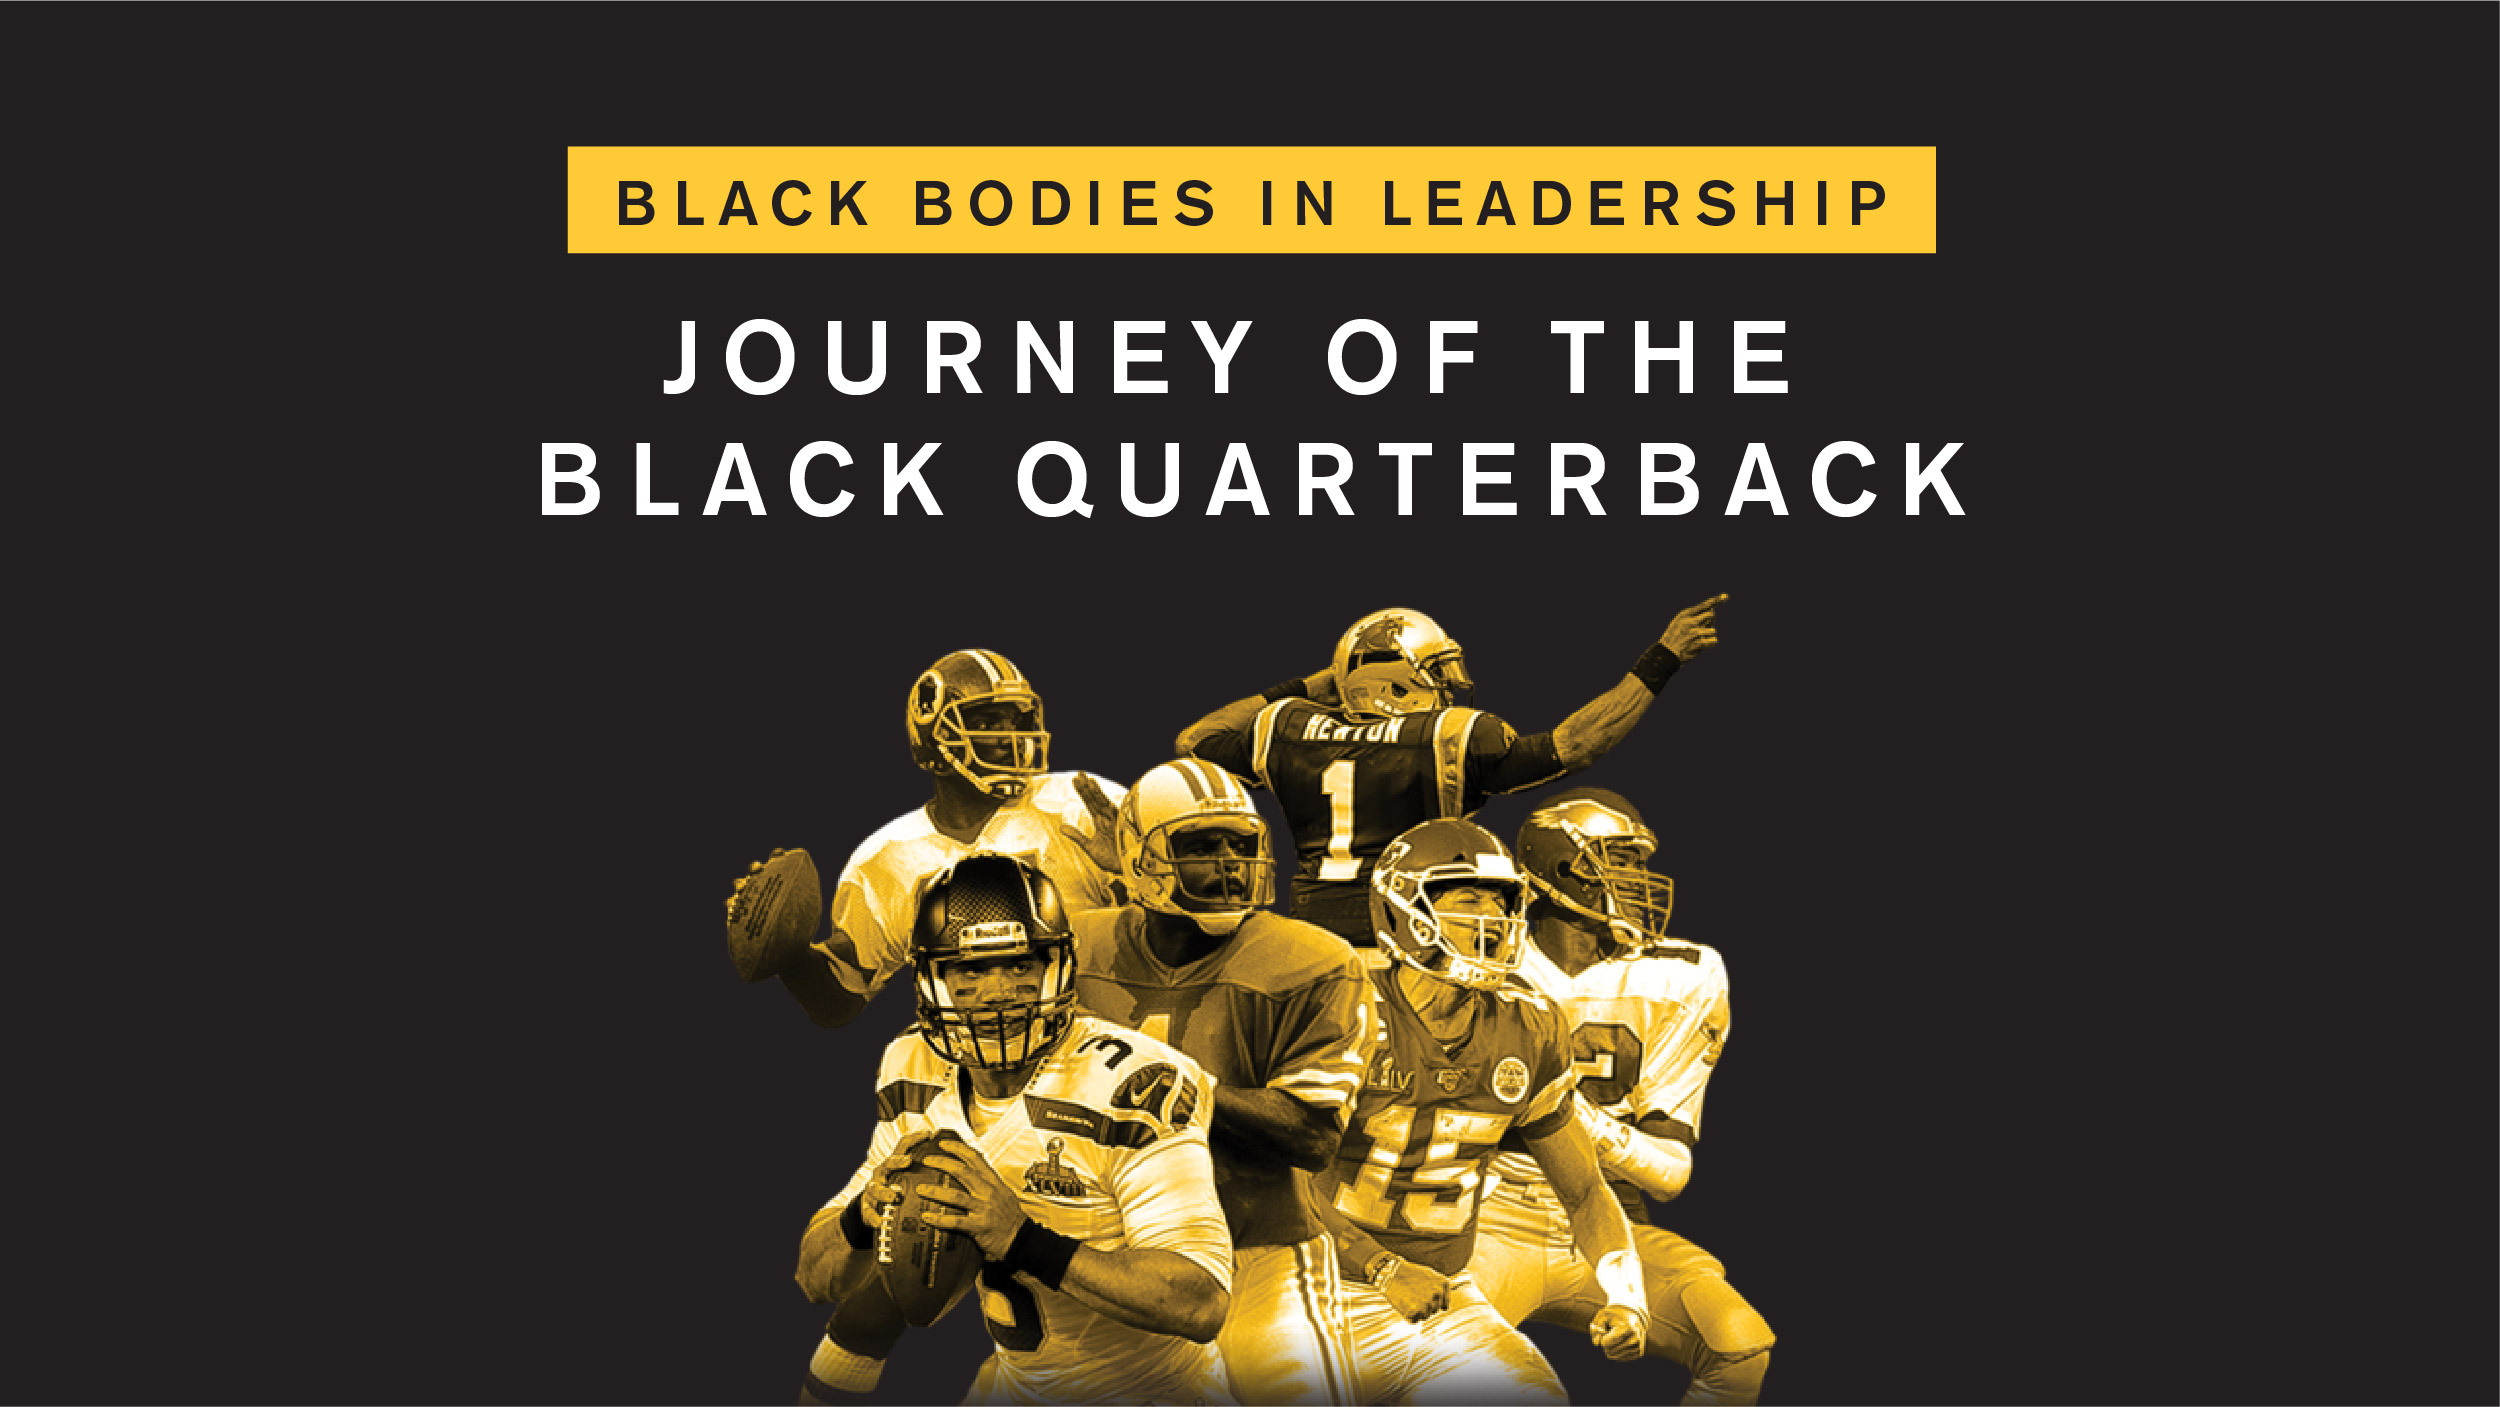 Black Bodies in Leadership: Journey of the Black Quarterback